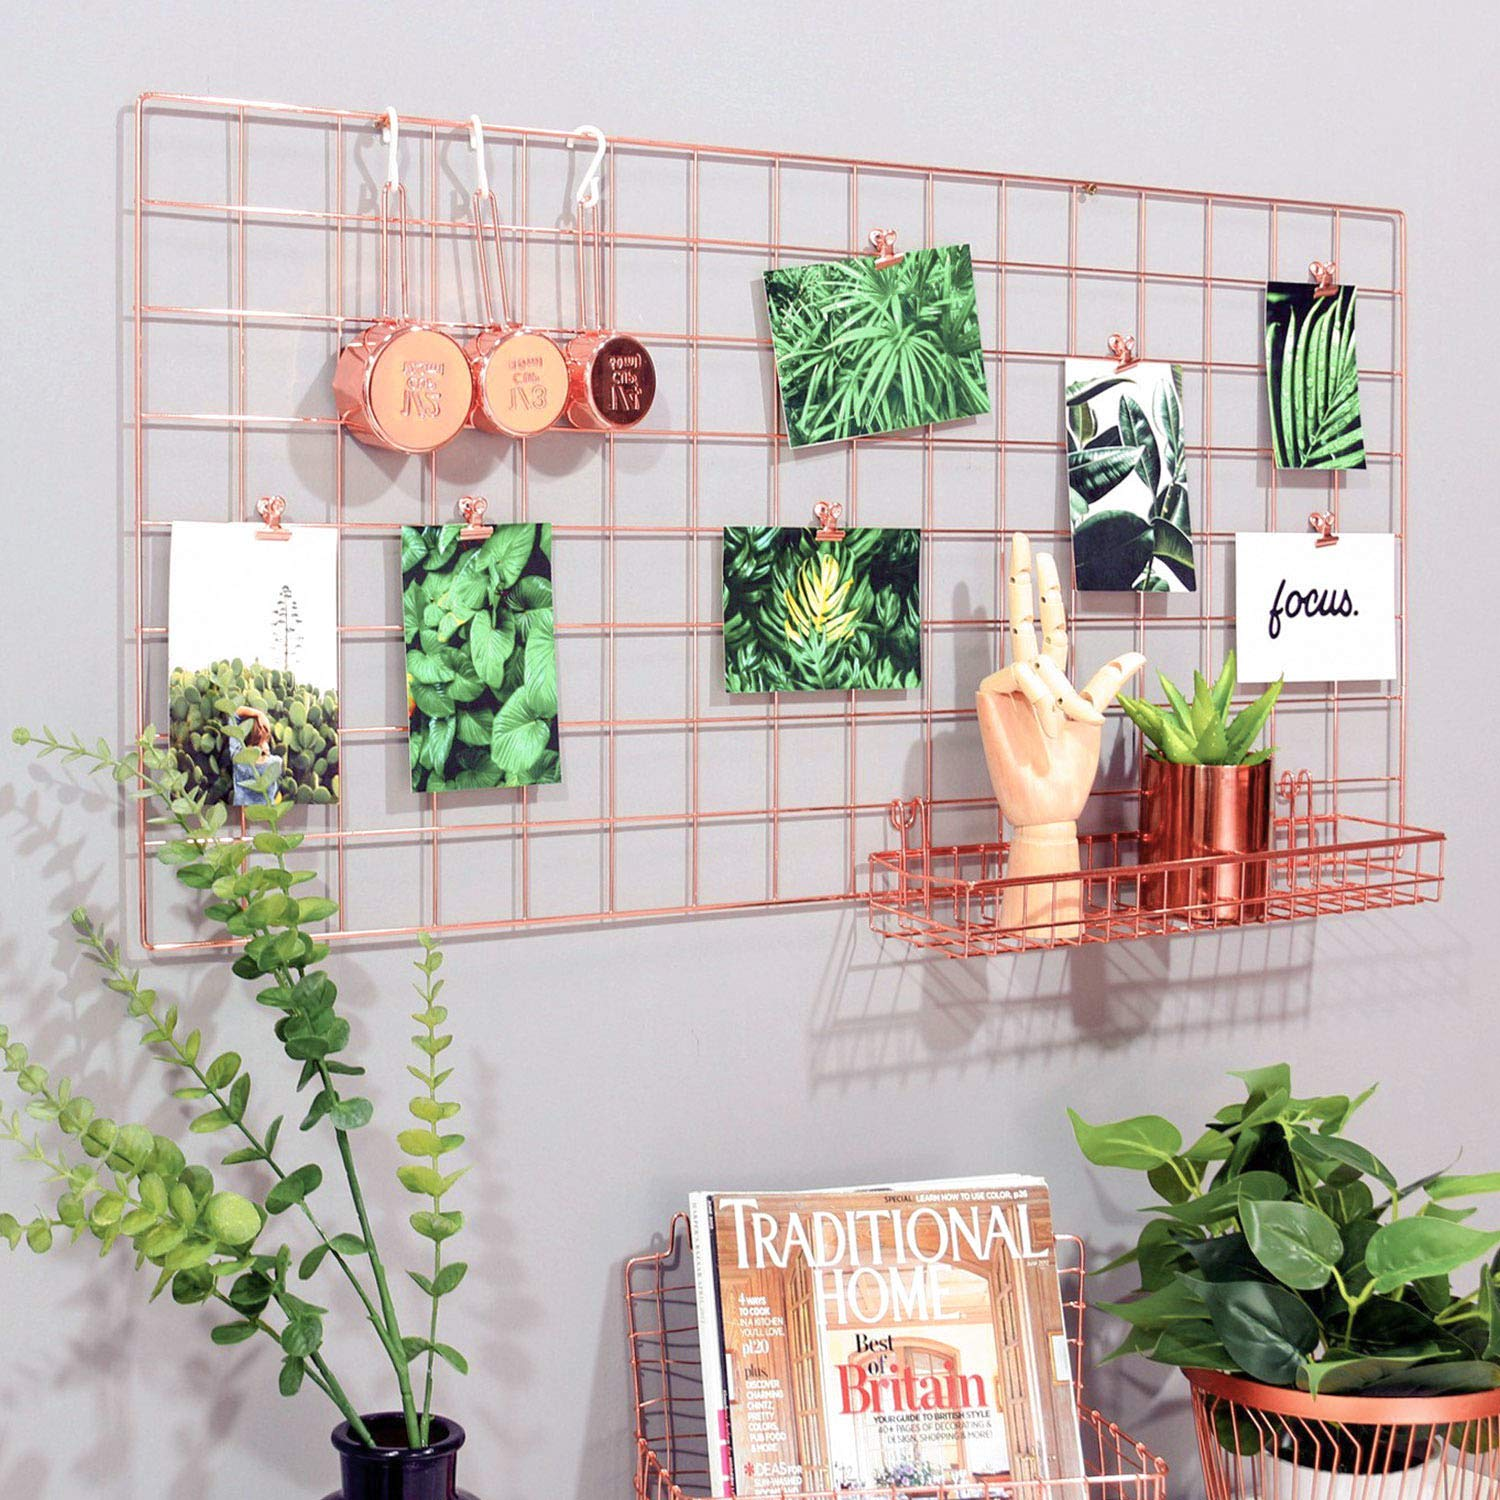 Simmer Stone Rose Gold Wall Grid Panel for Photo Hanging Display & Wall Decoration Organizer, Multi-Functional Wall Storage Display Grid, 5 Clips & 4 Nails Offered, Set of 1, Size 17.7''x37.4''